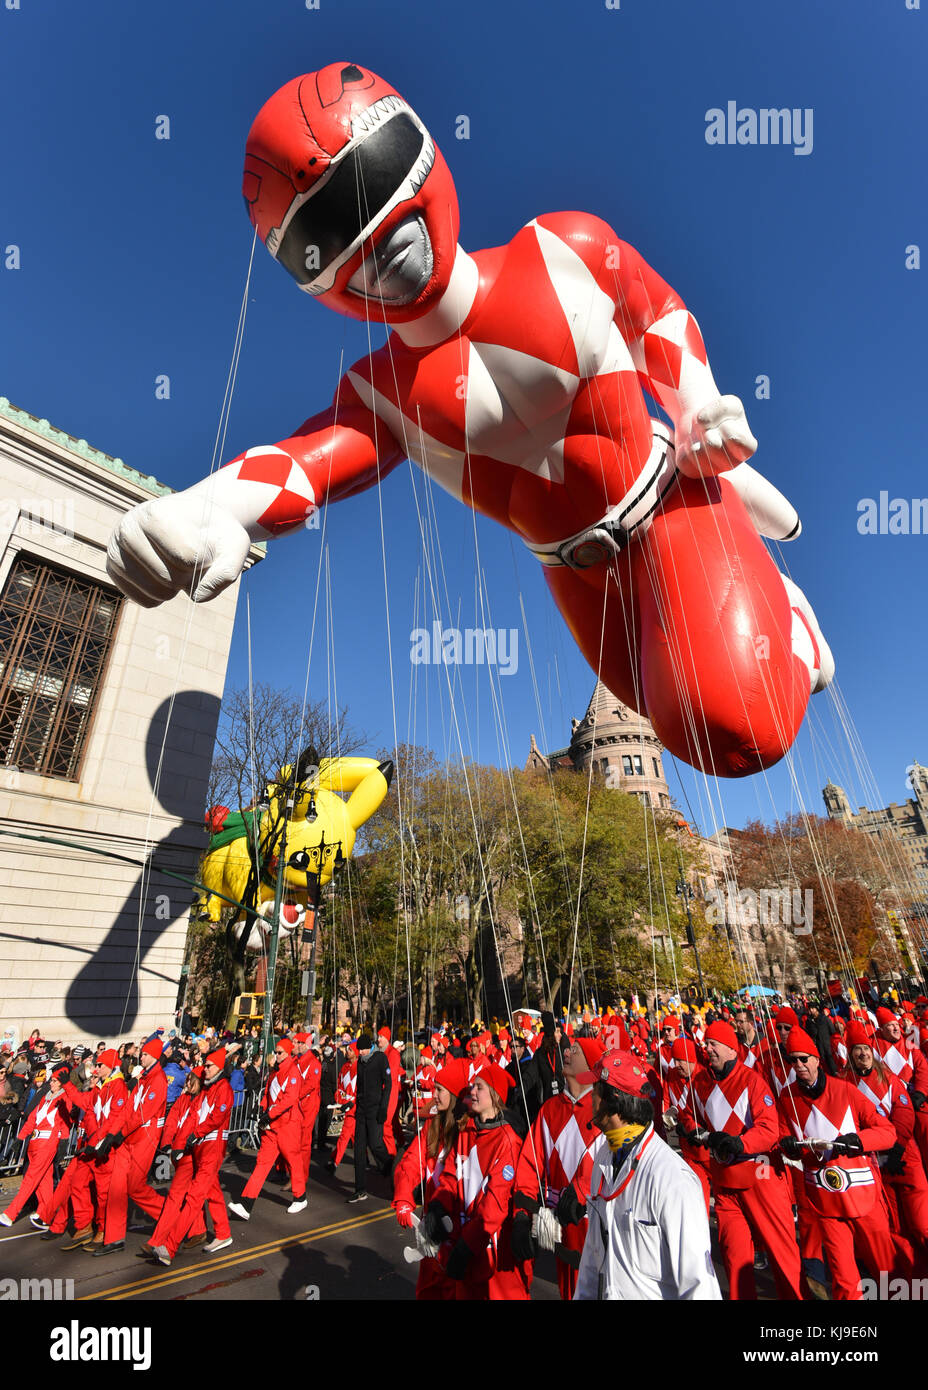 New York, USA. 23rd November, 2017. Red Mighty Morphin Power Ranger balloon floats down Central Park West during - Stock Image